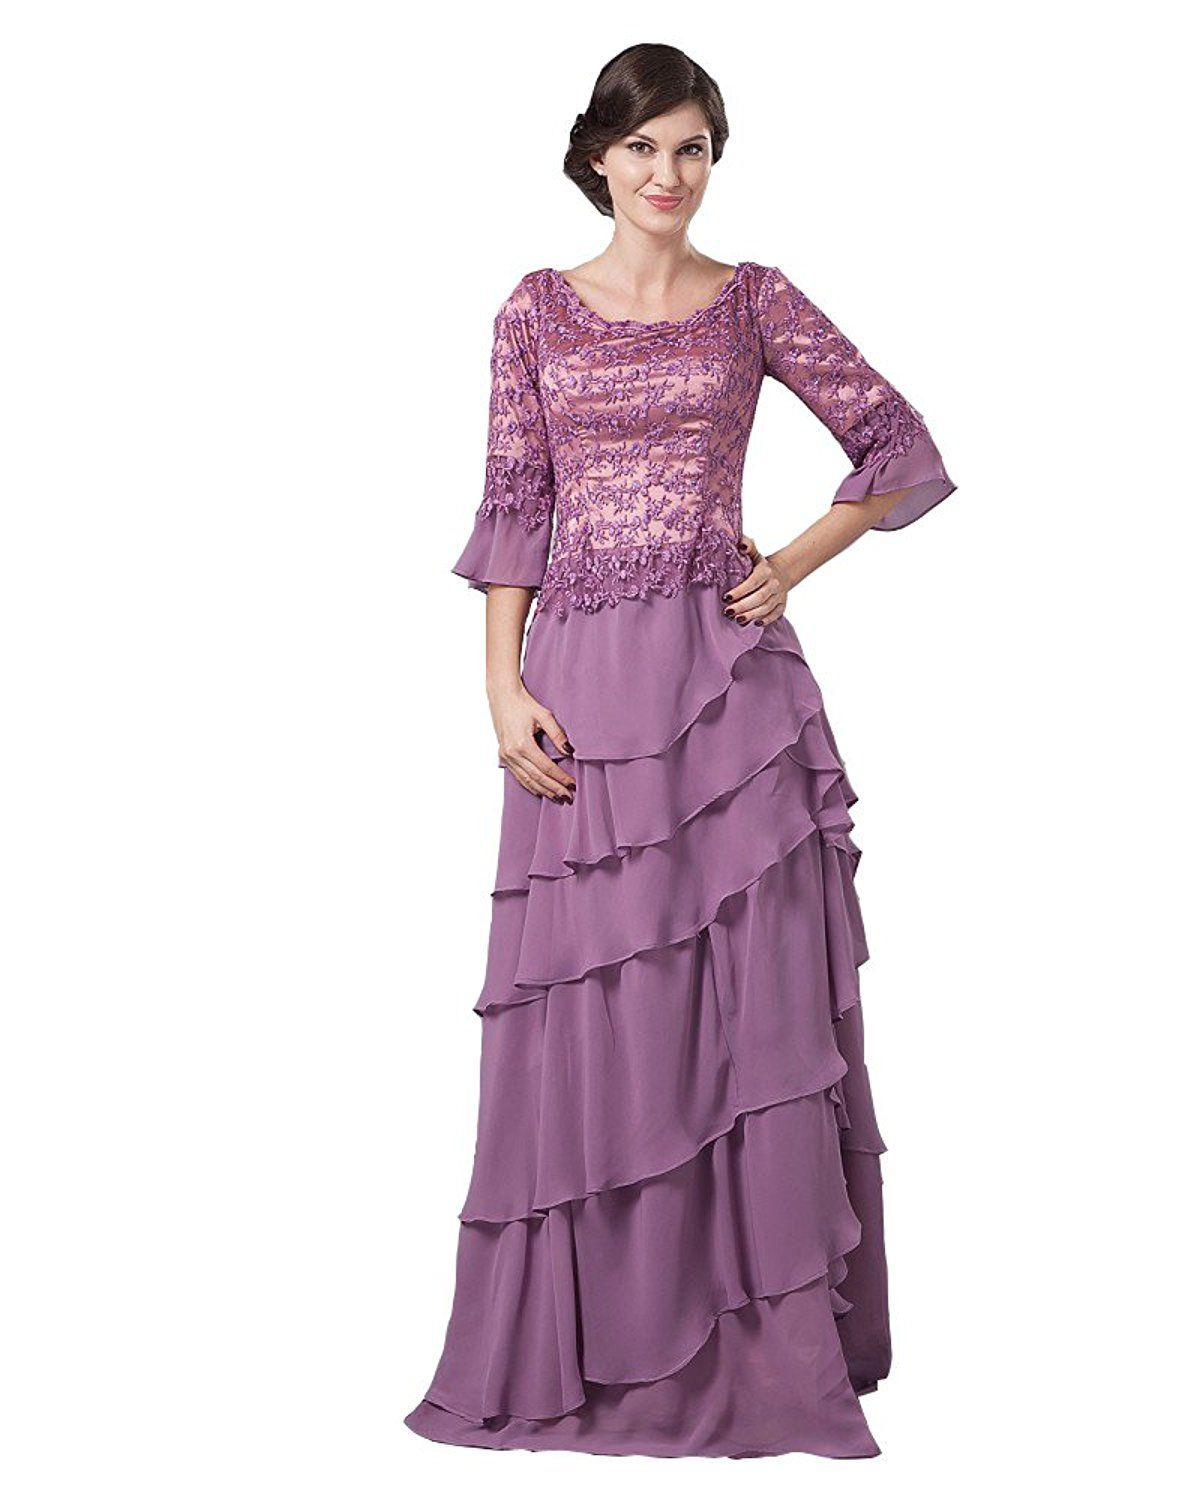 Maternity dress for wedding guest  Angel Formal Dresses Jewel Floor length Chiffon And Lace Mother Of